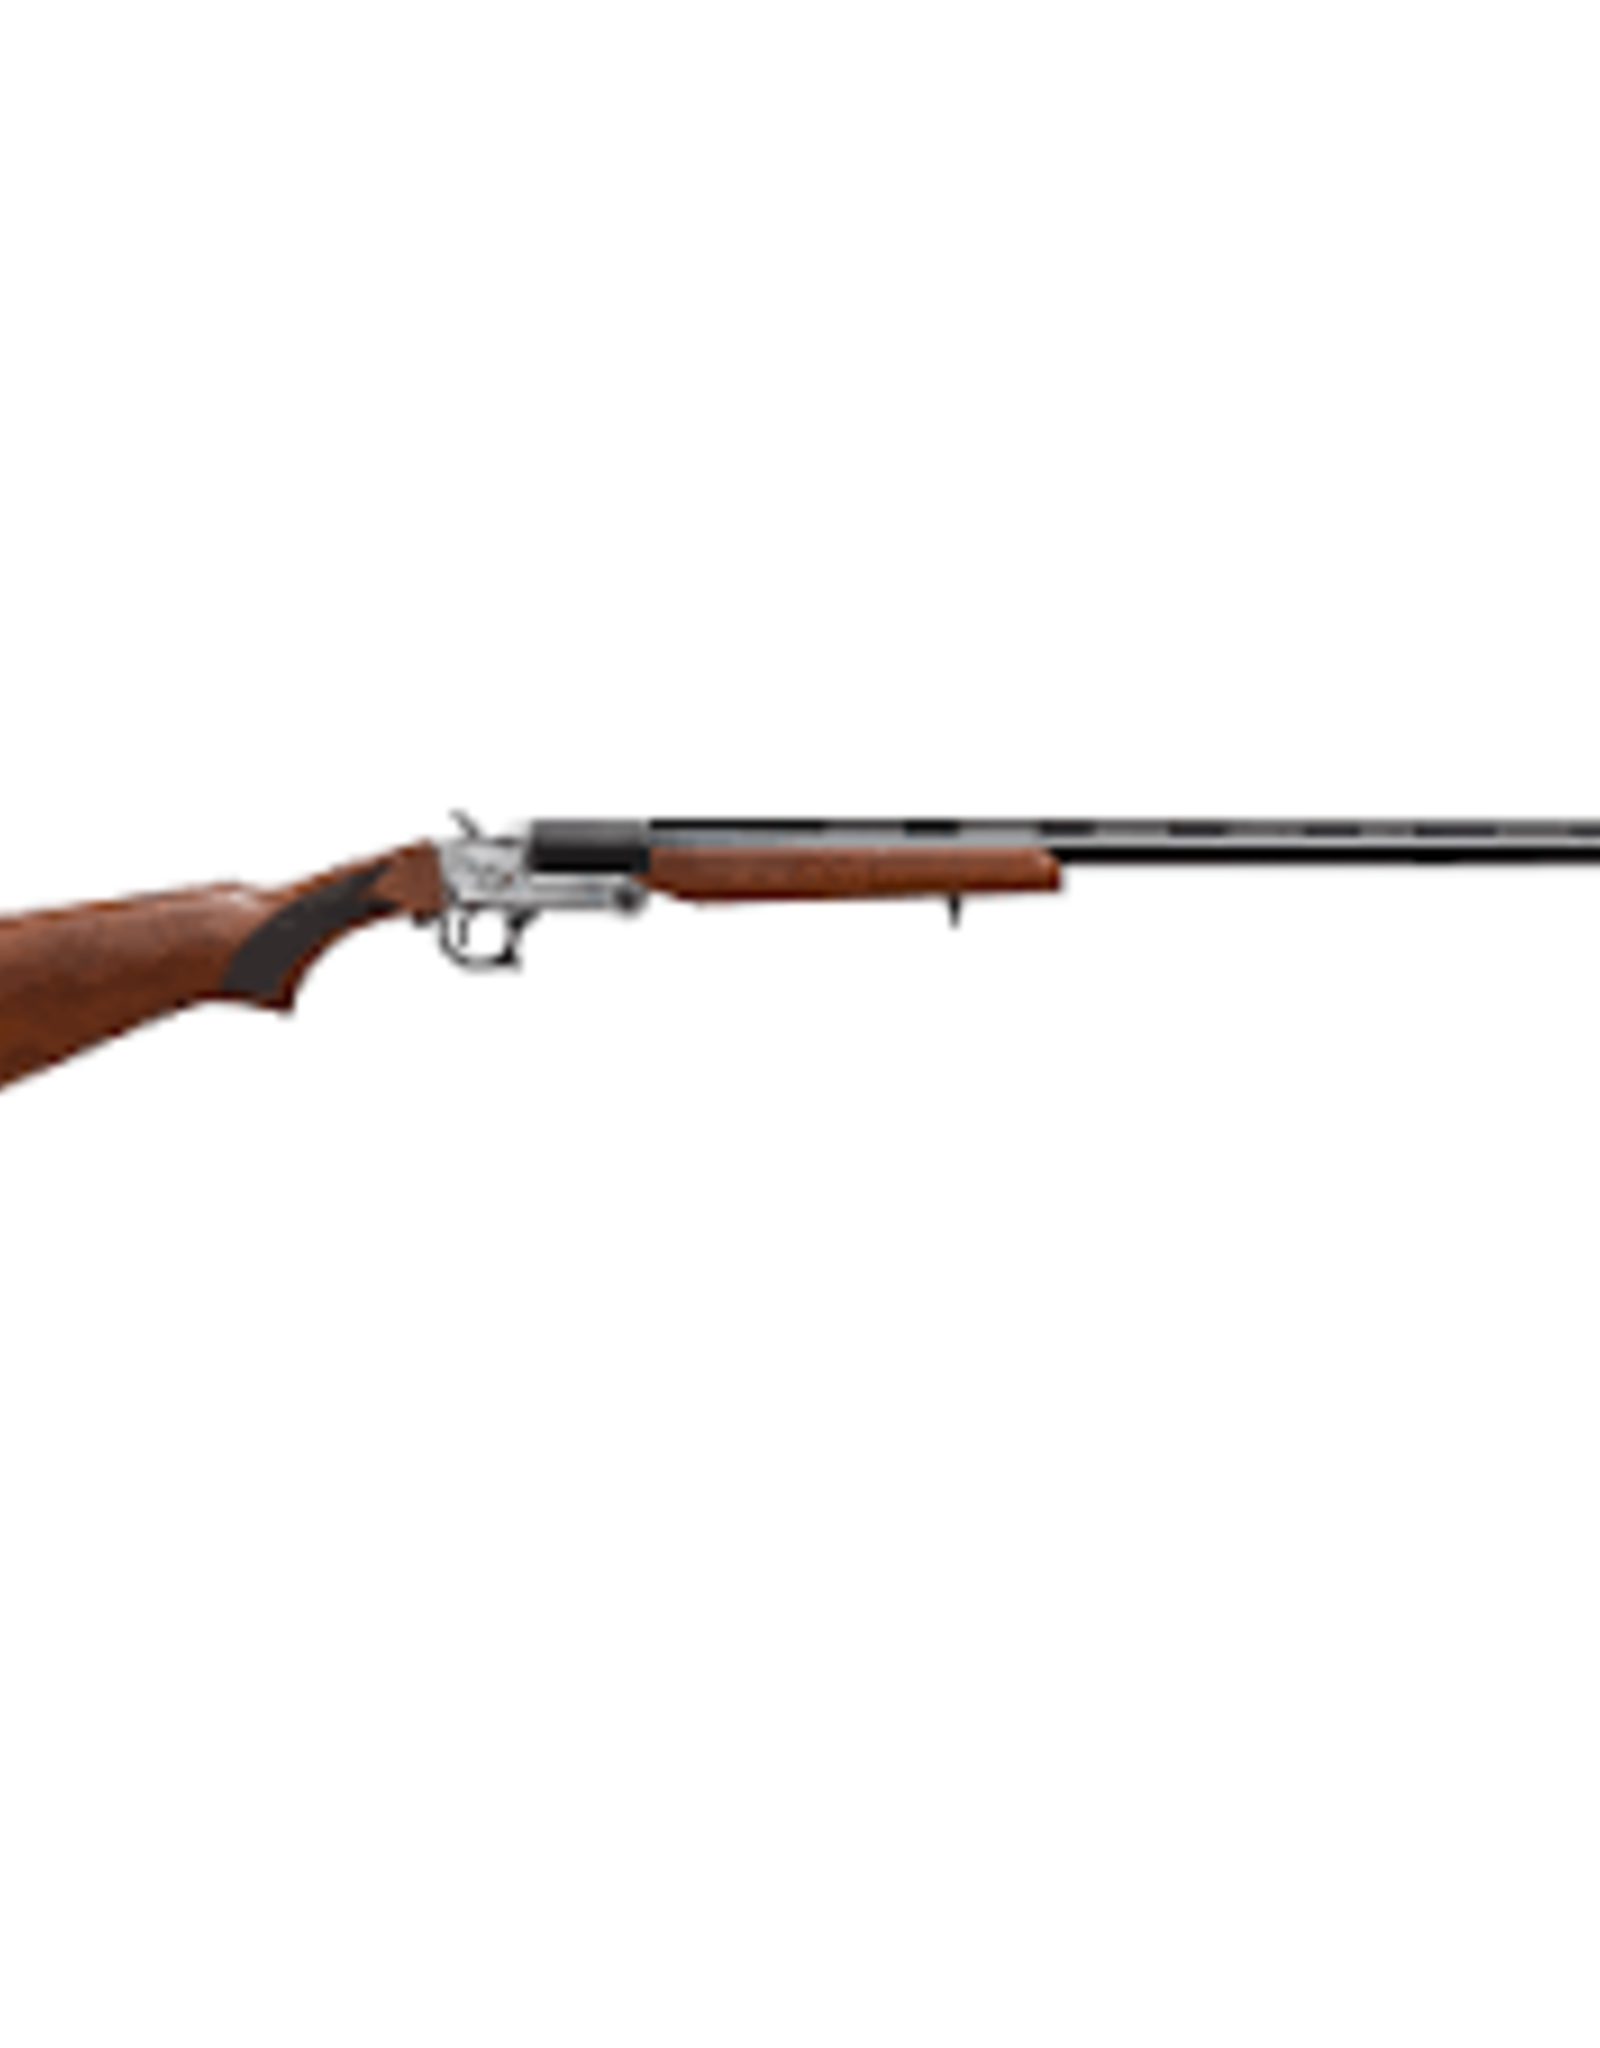 Optima 20 Gauge Single Shot Walnut